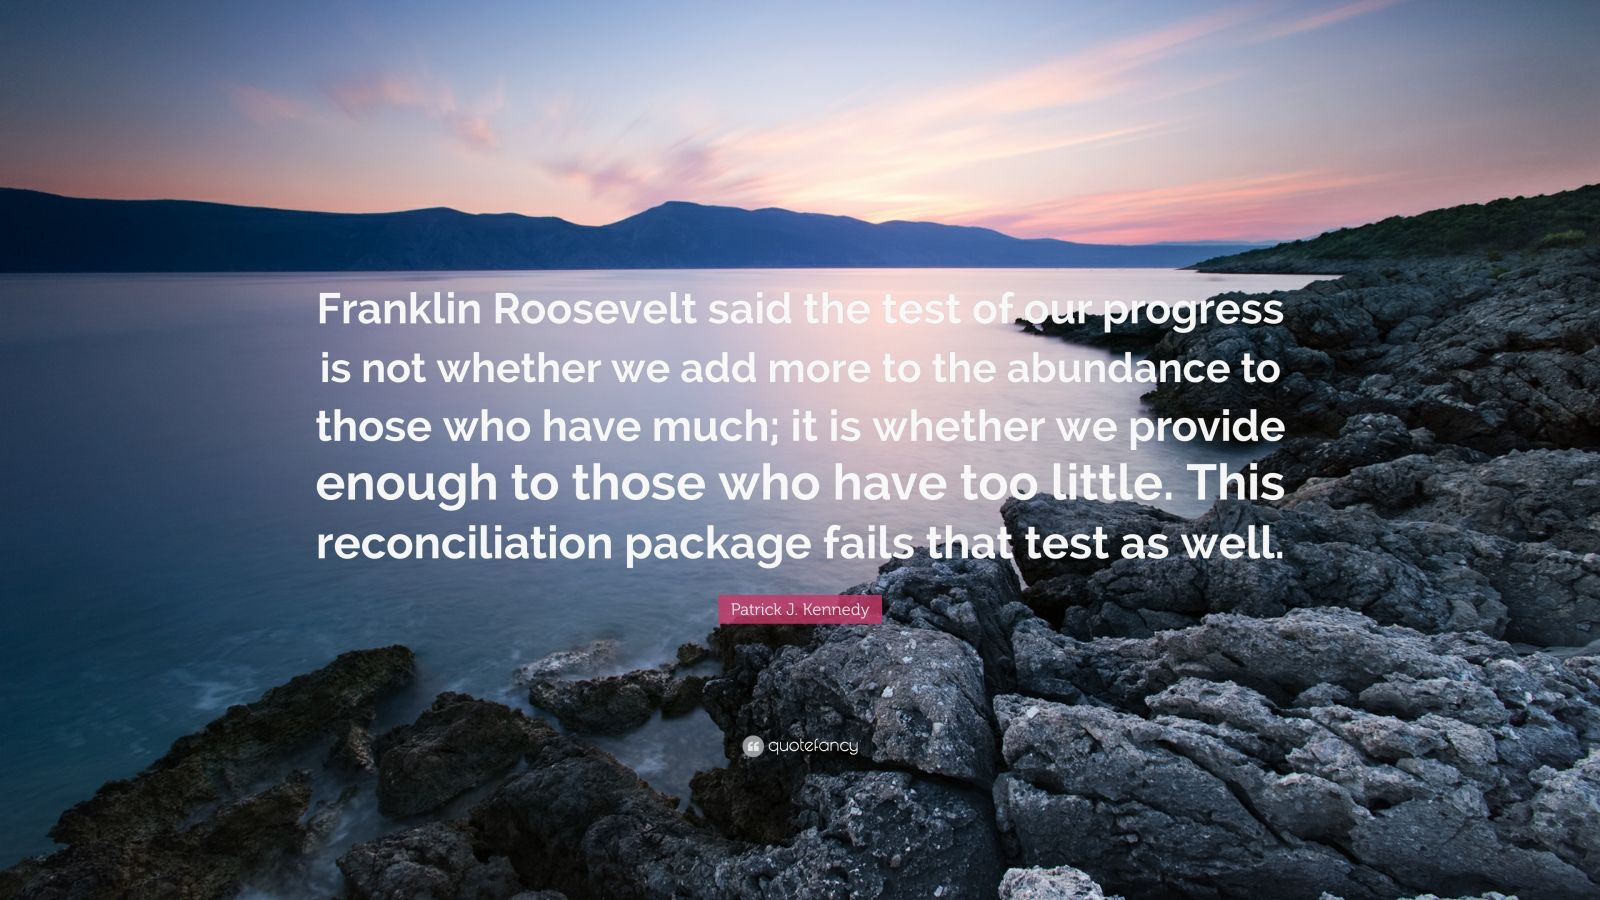 "Patrick J. Kennedy Quote: ""Franklin Roosevelt said the test of our progress is not whether we add more to the abundance to those who have much; it is whether we provide enough to those who have too little. This reconciliation package fails that test as well."""